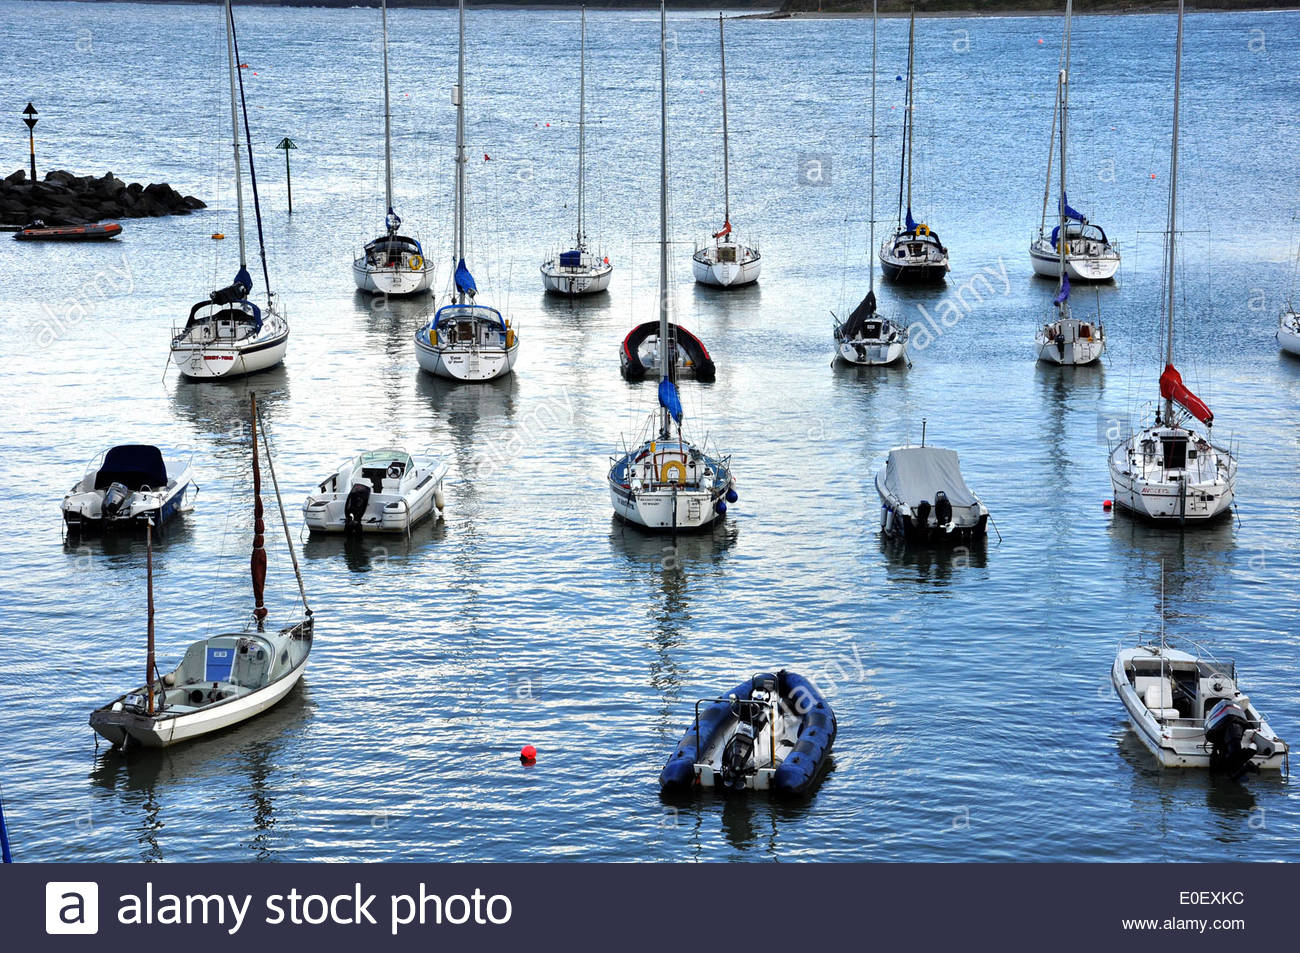 Boats at New Quay Harbour in Ceredigion, Wales, UK - Stock Image